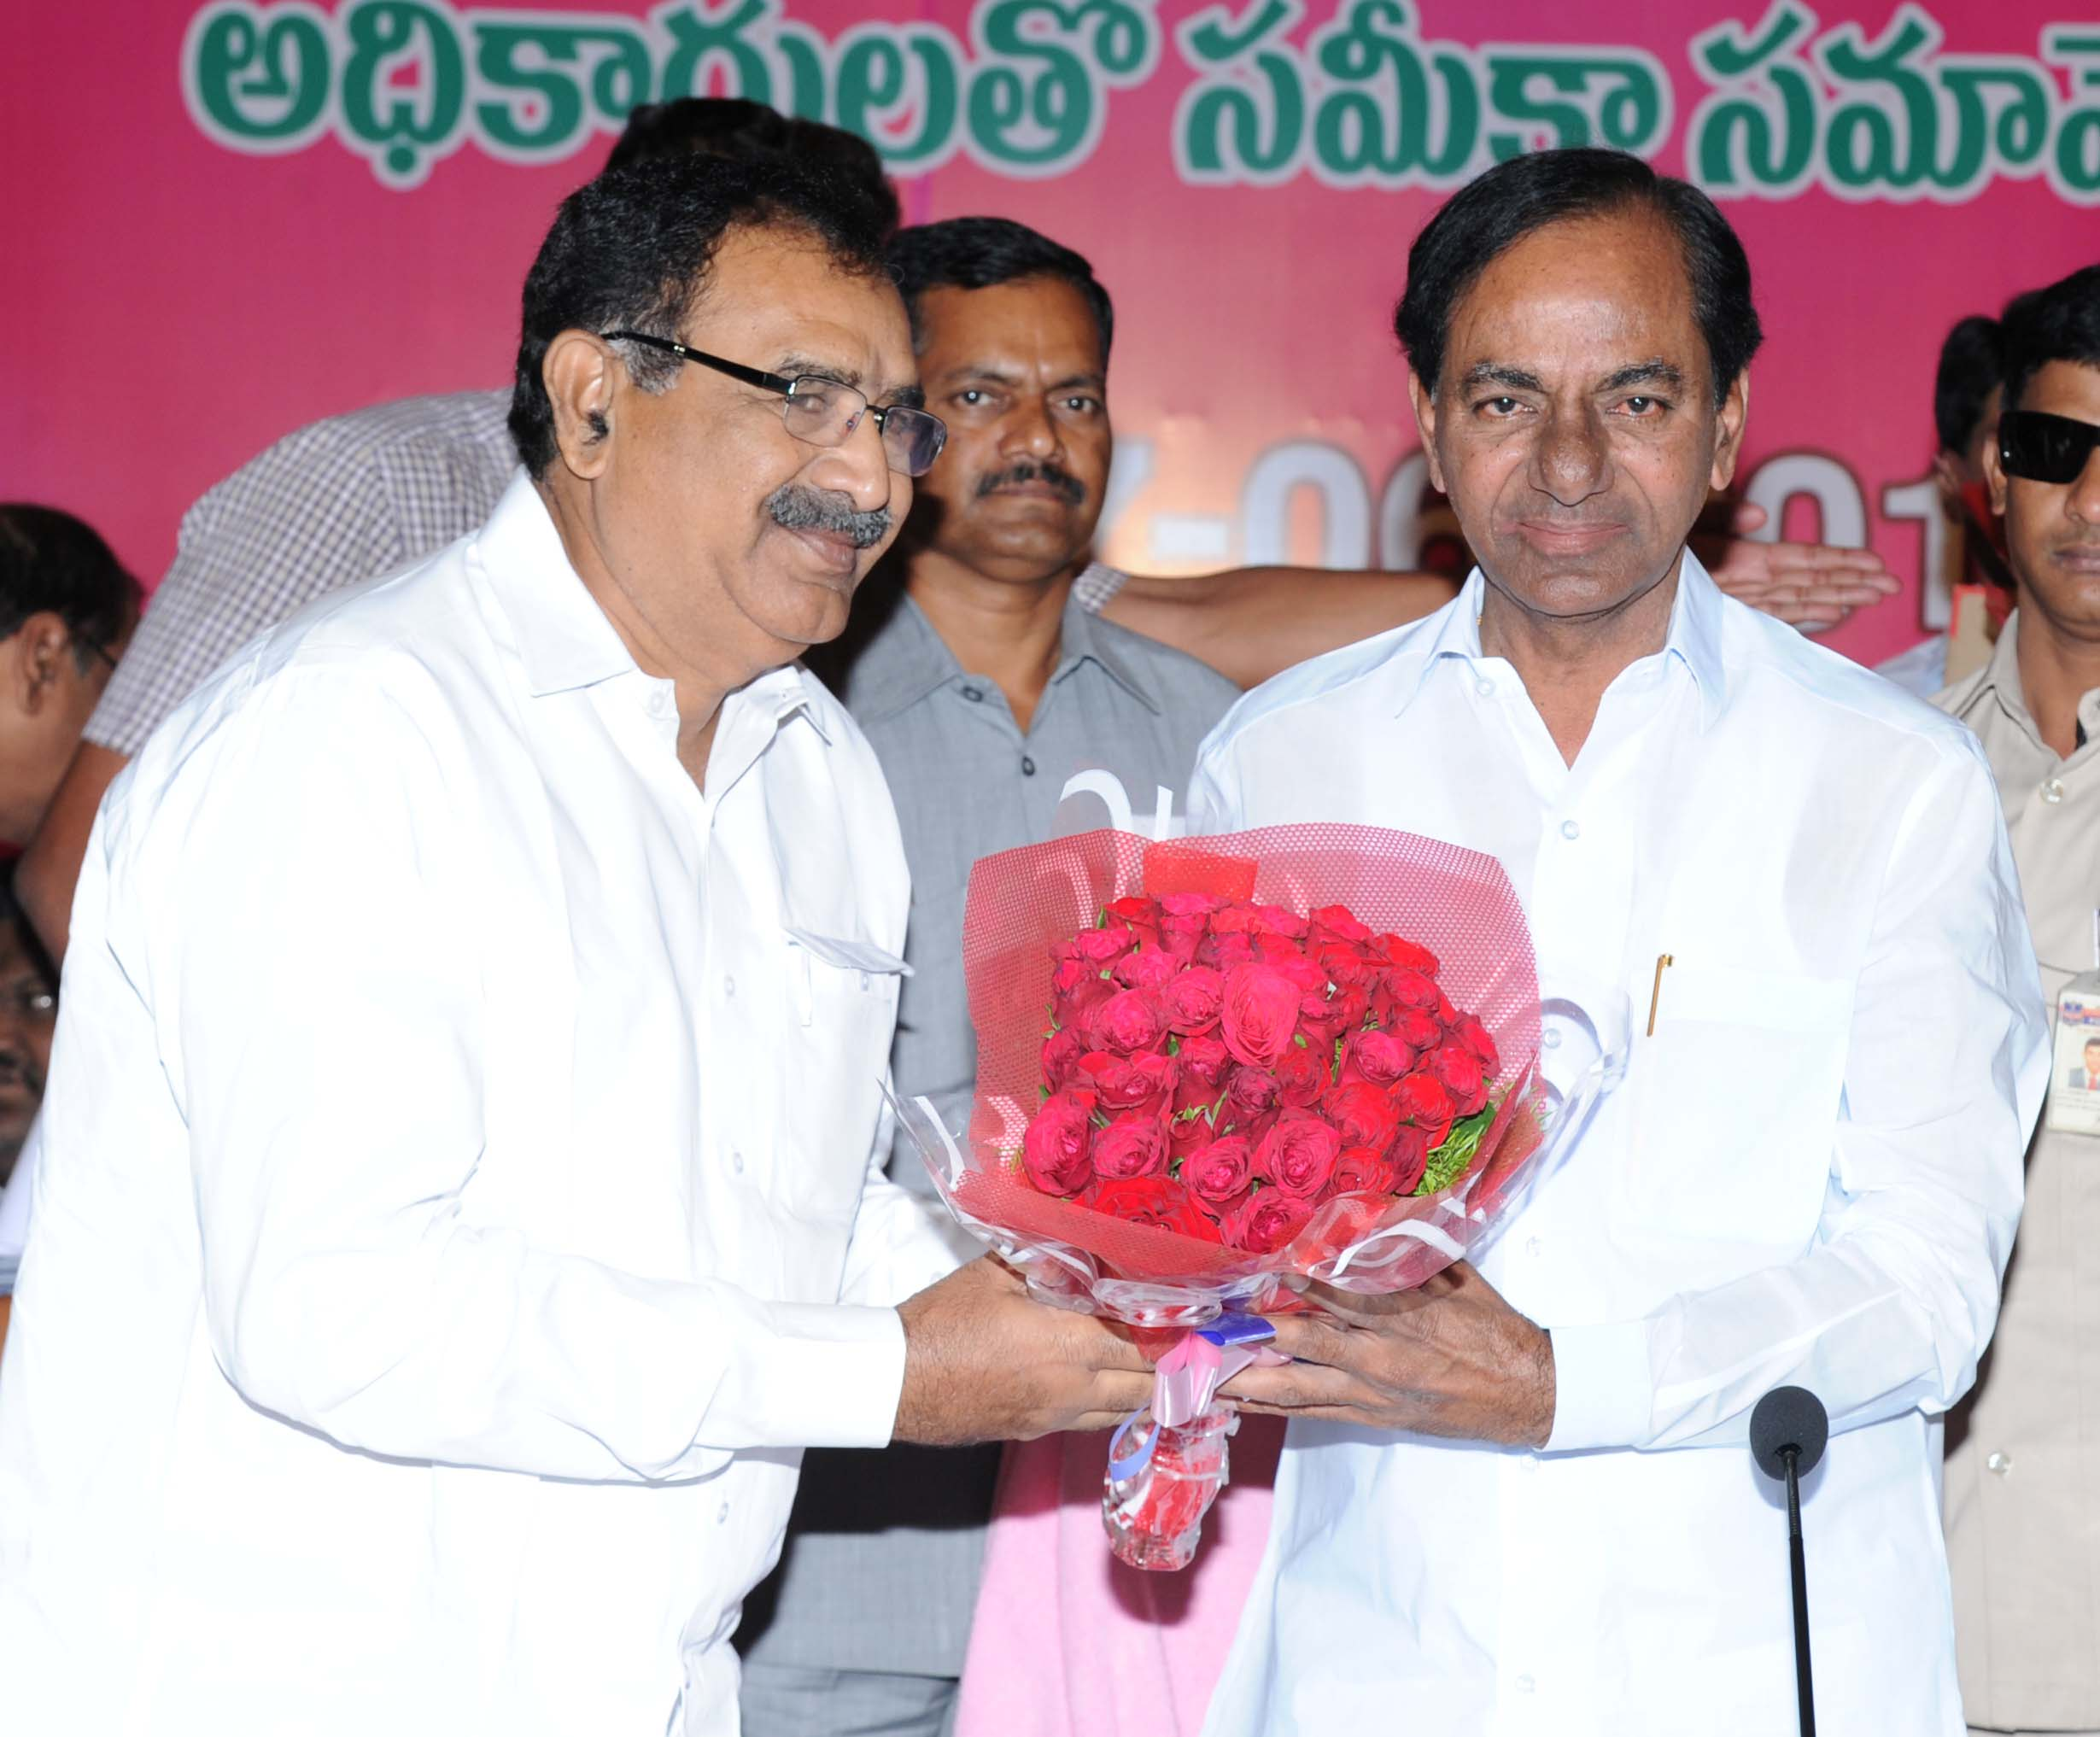 Telangana Chief Minister K.Chandrashekhar Rao\'s Review on State RTC at Marriat Hotel on 17.6.2016.